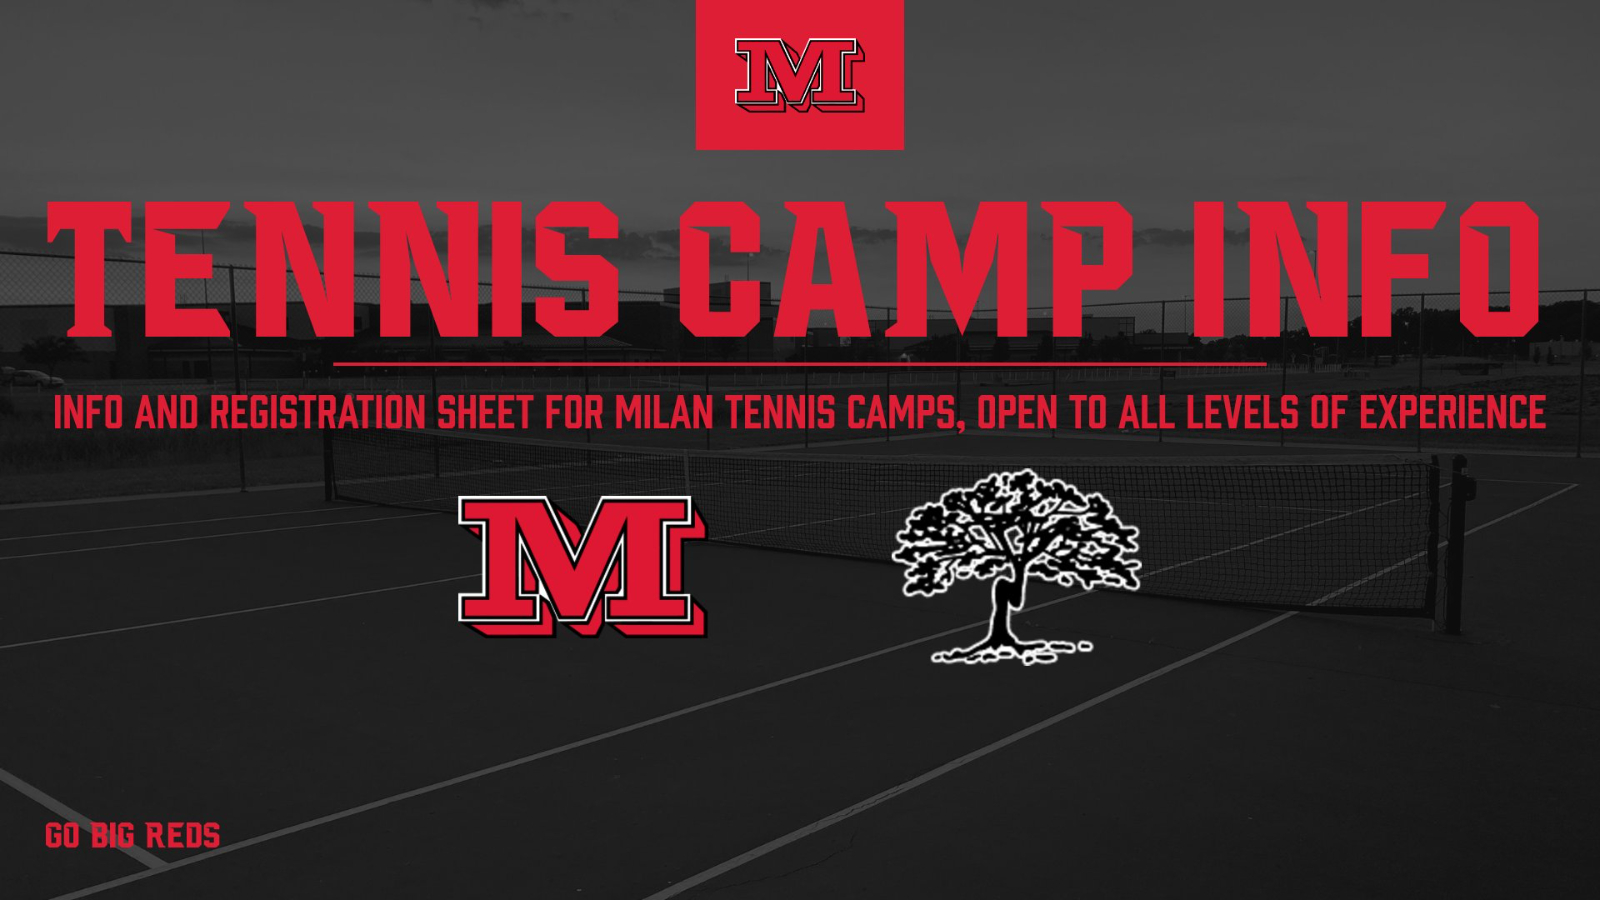 Milan Summer Tennis Camps Registration and Information